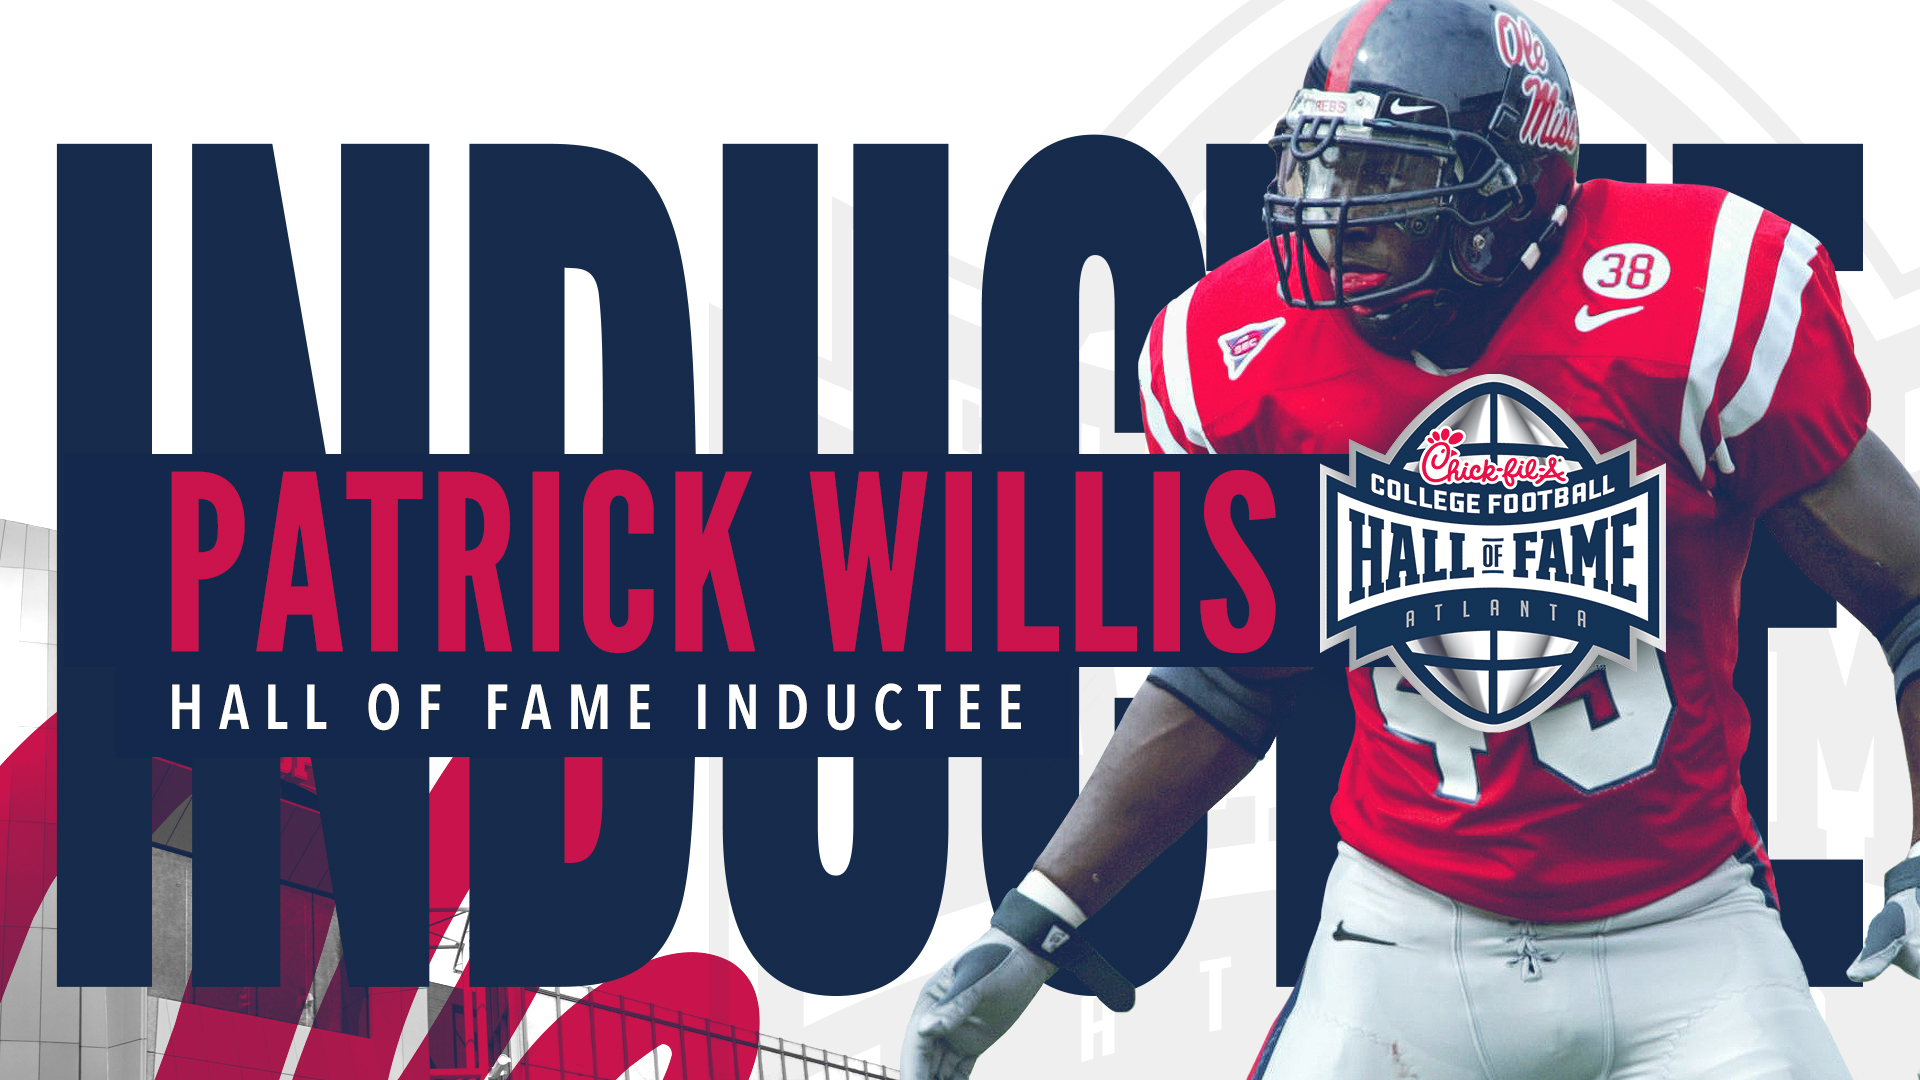 11e35e59a91 Willis Elected to College Football Hall of Fame - Ole Miss Athletics